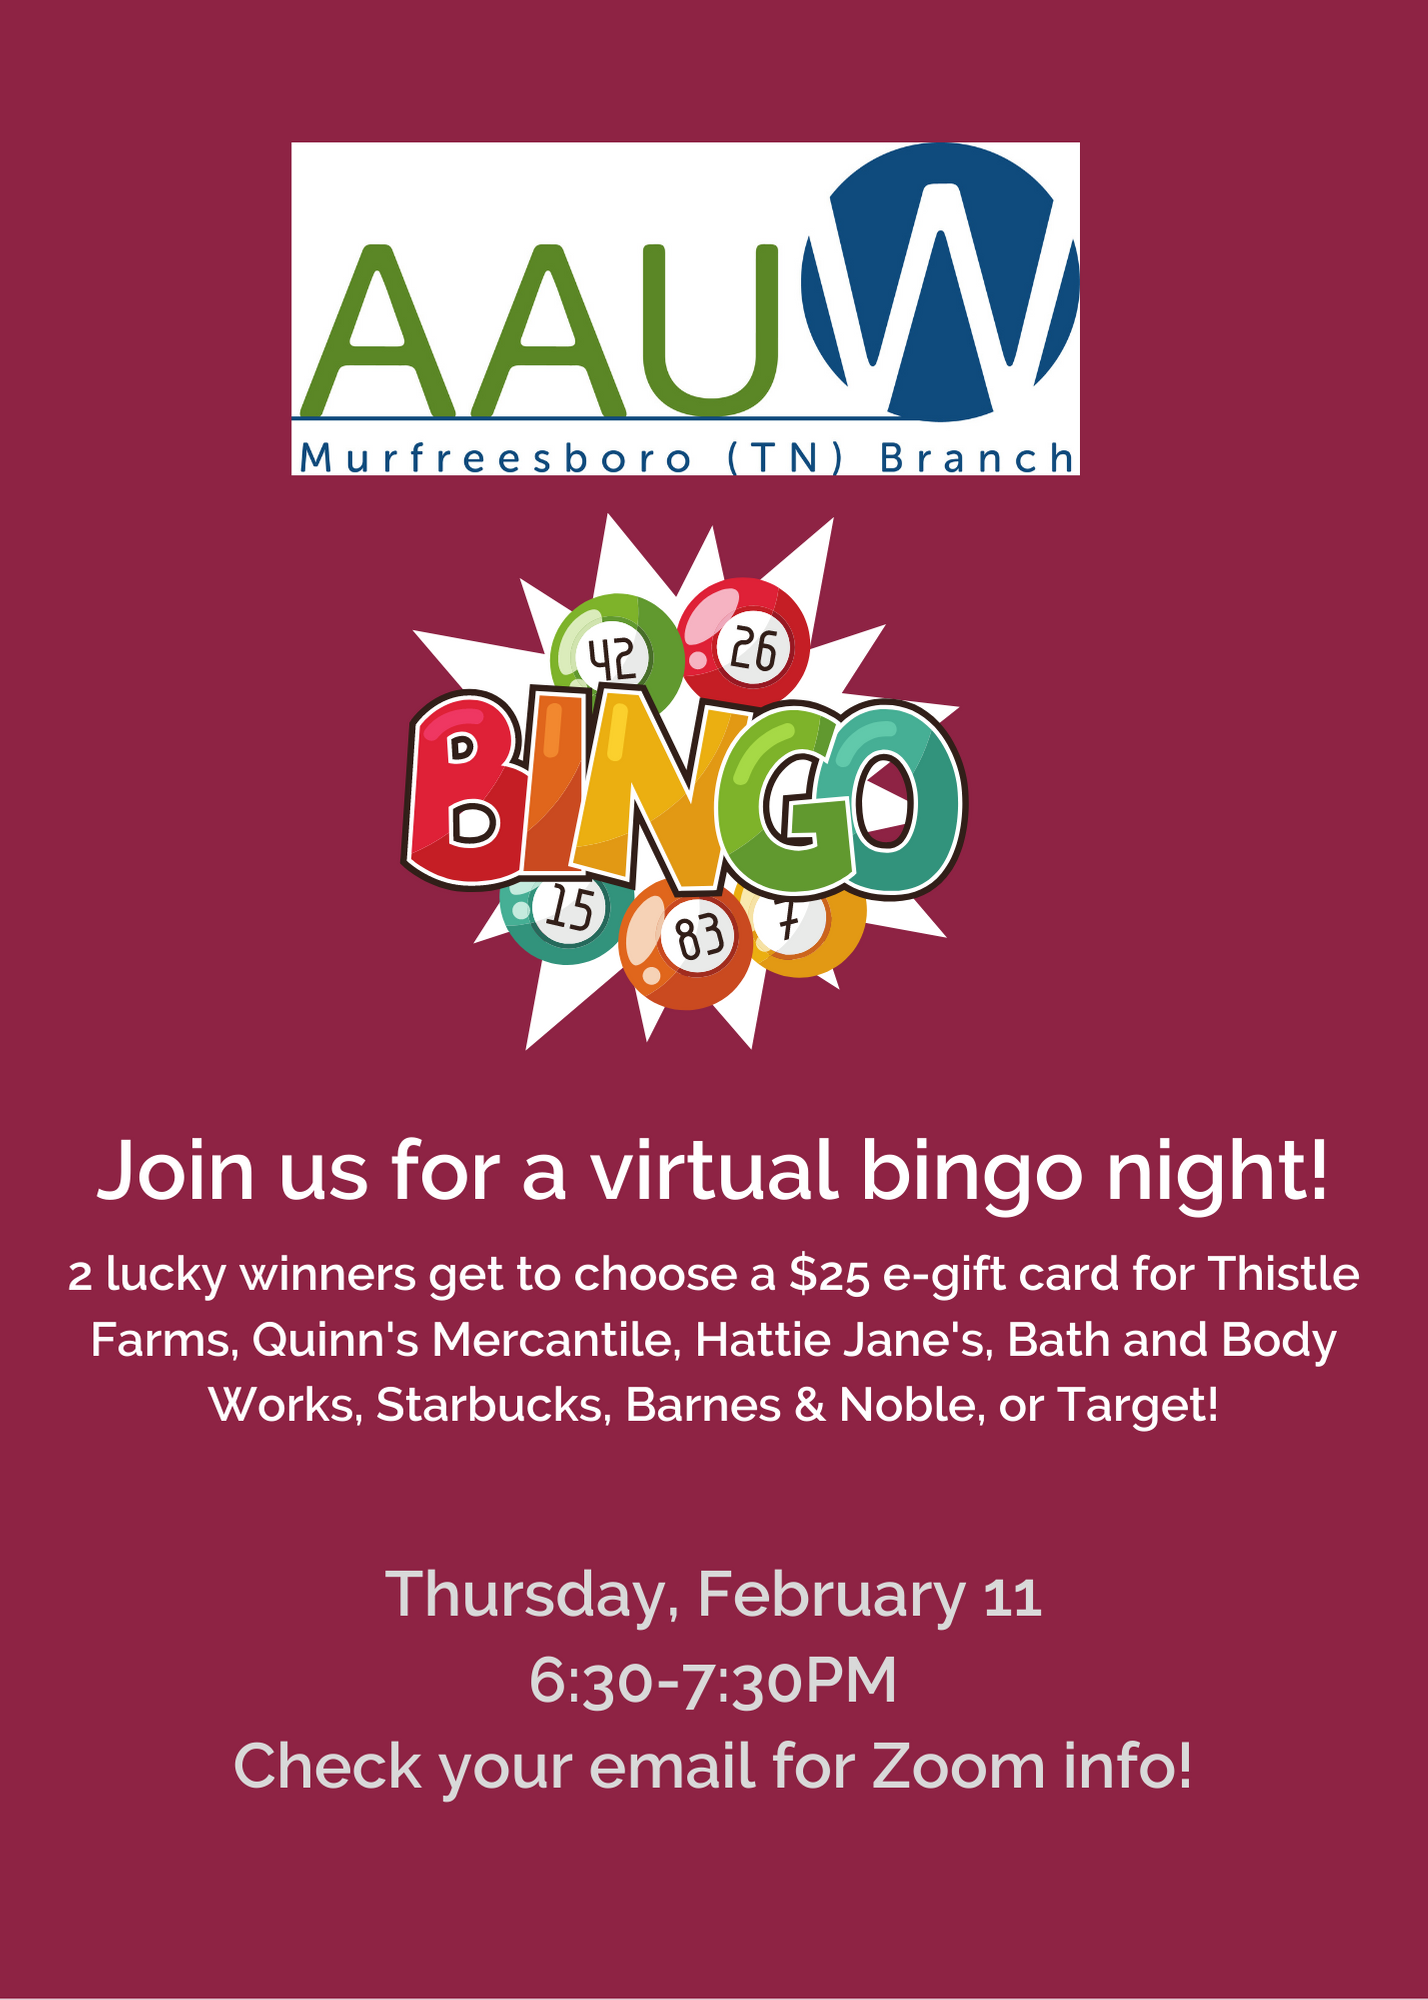 "Magenta background with white text. Includes AAUW Murfreesboro logo and the word BINGO with bingo balls. Text says ""Join us for a virtual bingo night! 2 lucky winners get to choose a $25 e-gift card for Thistle Farms, Quinn's Mercantile, Hattie Janes, Bath and Body Works, Starbucks, Barnes & Noble, or Target! Thursday, February 11. 6:30-7:30PM. Check your email for Zoom info!"